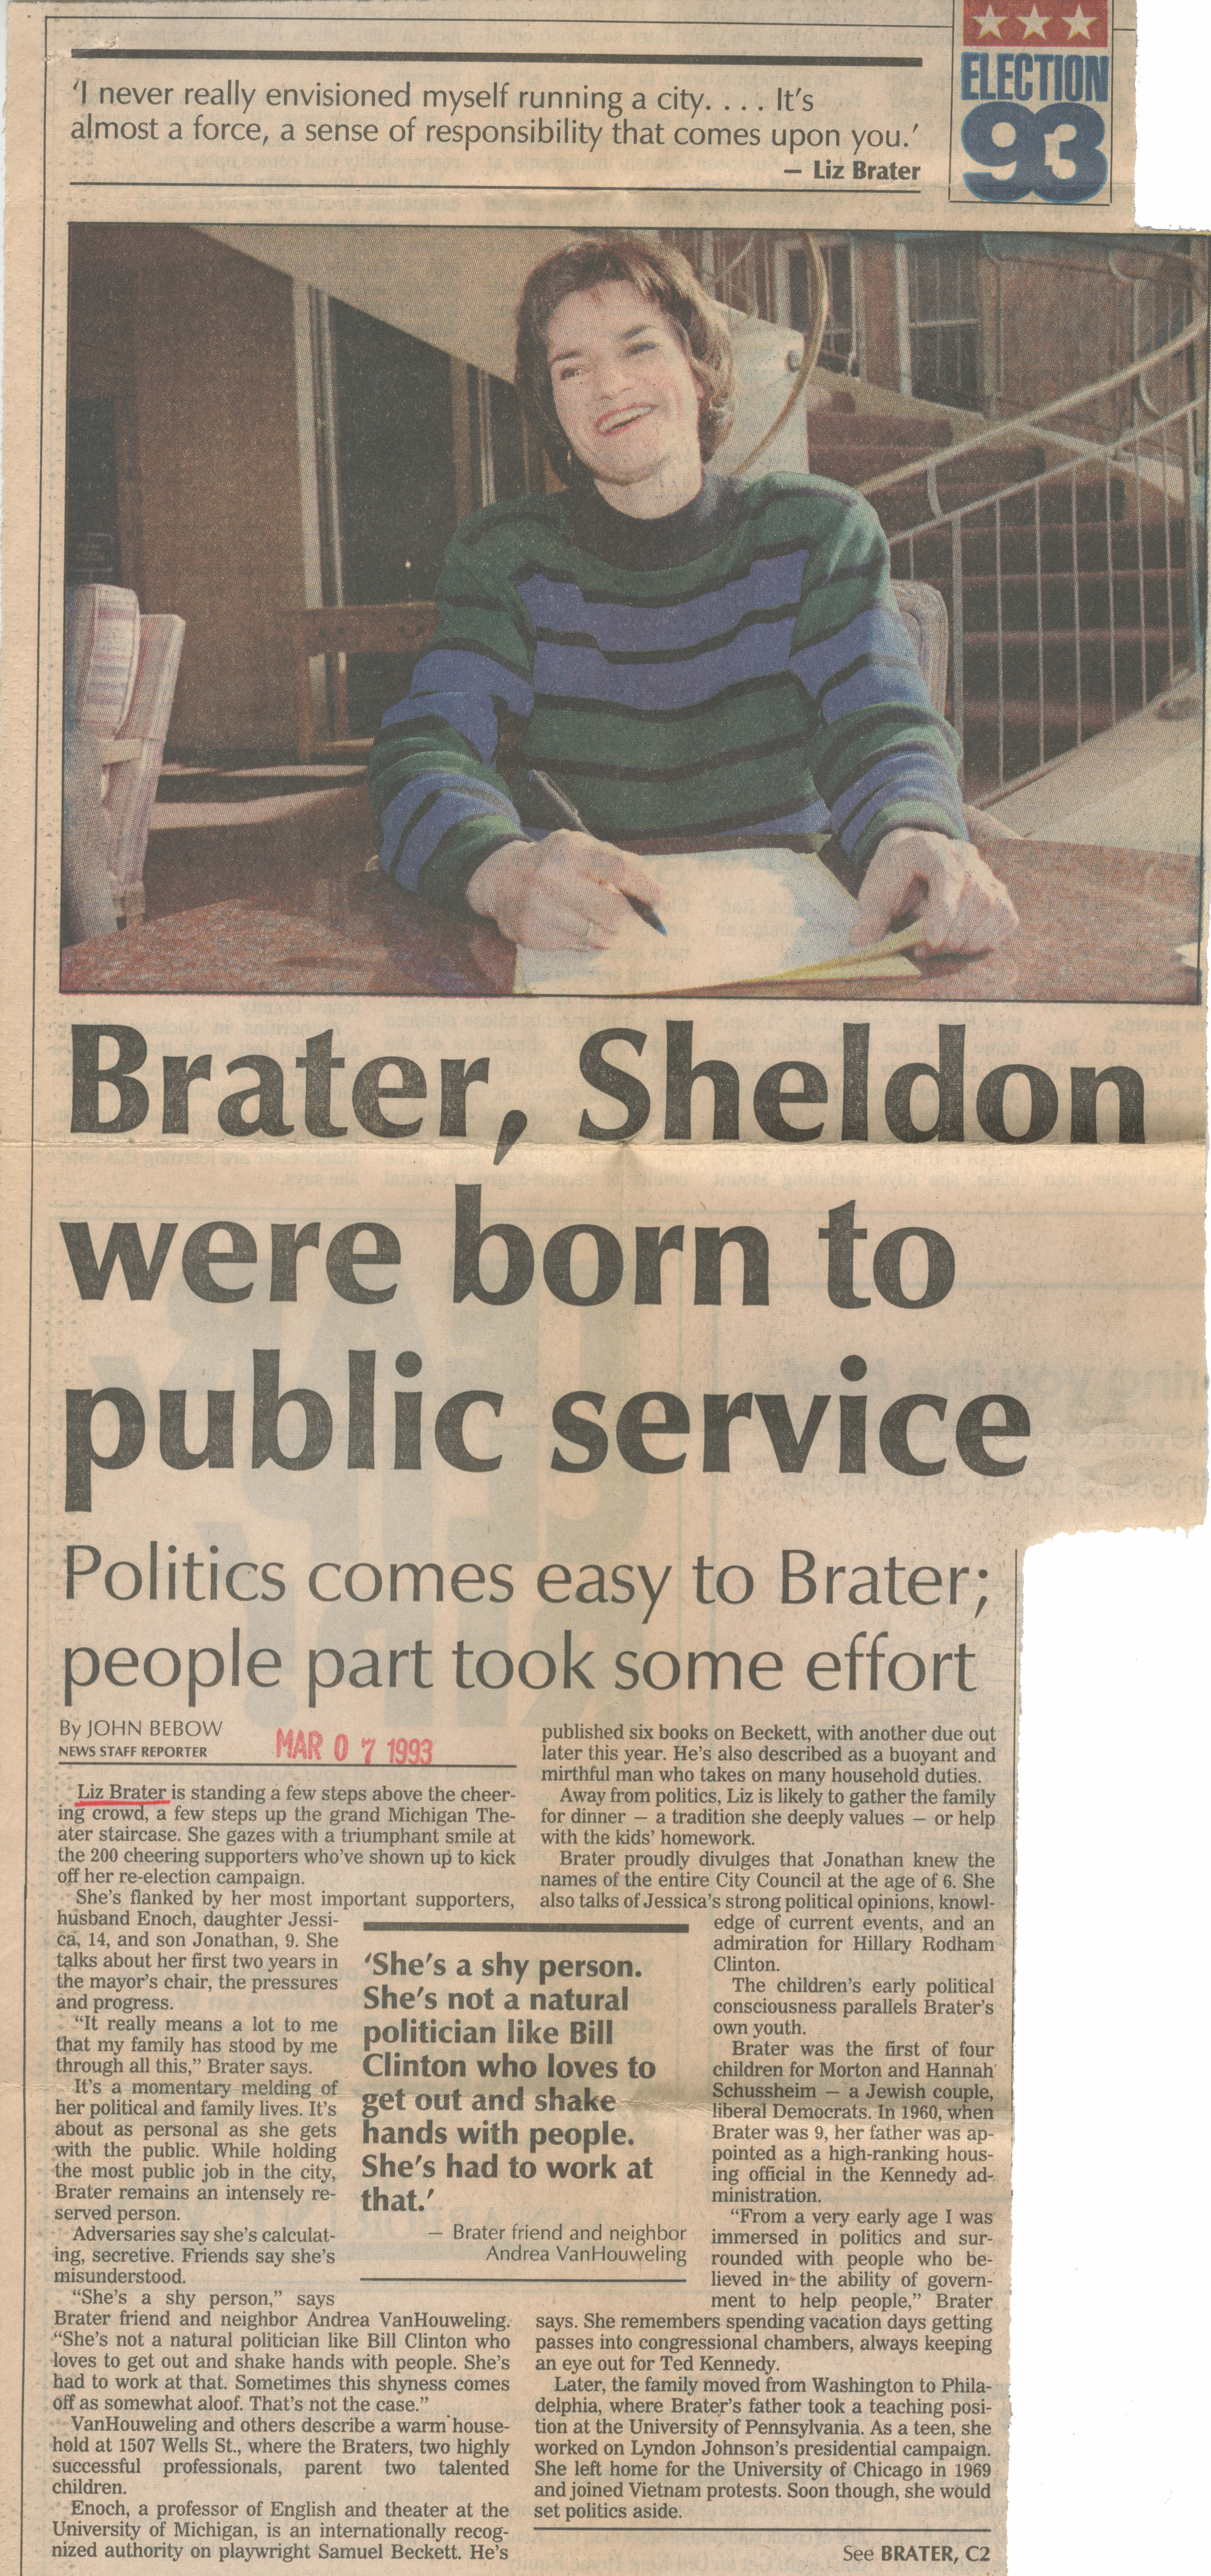 Brater, Sheldon were born to public service image